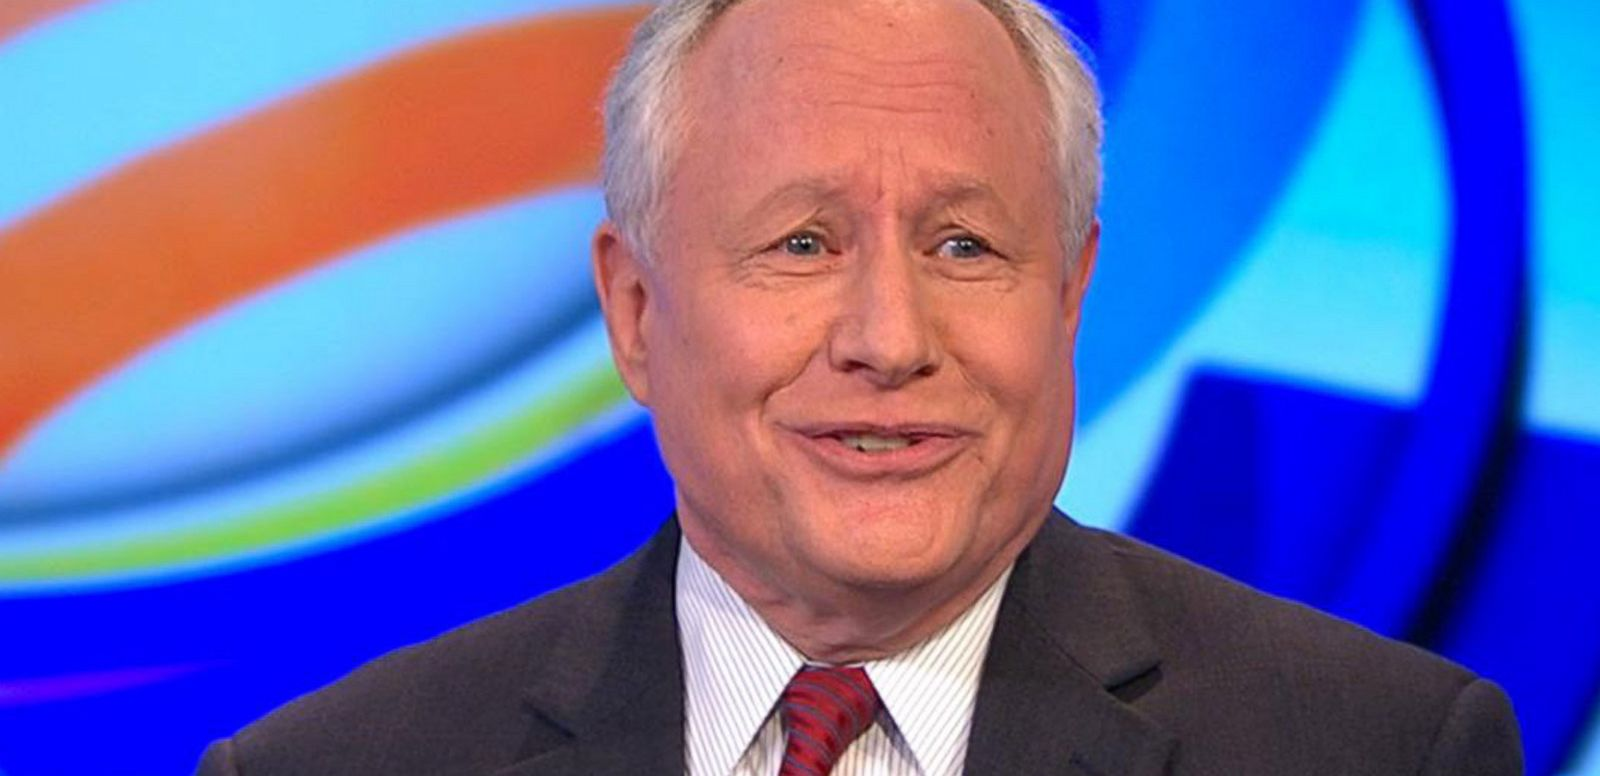 VIDEO: Bill Kristol: 'I'm pro-Carson and anti-Trump'